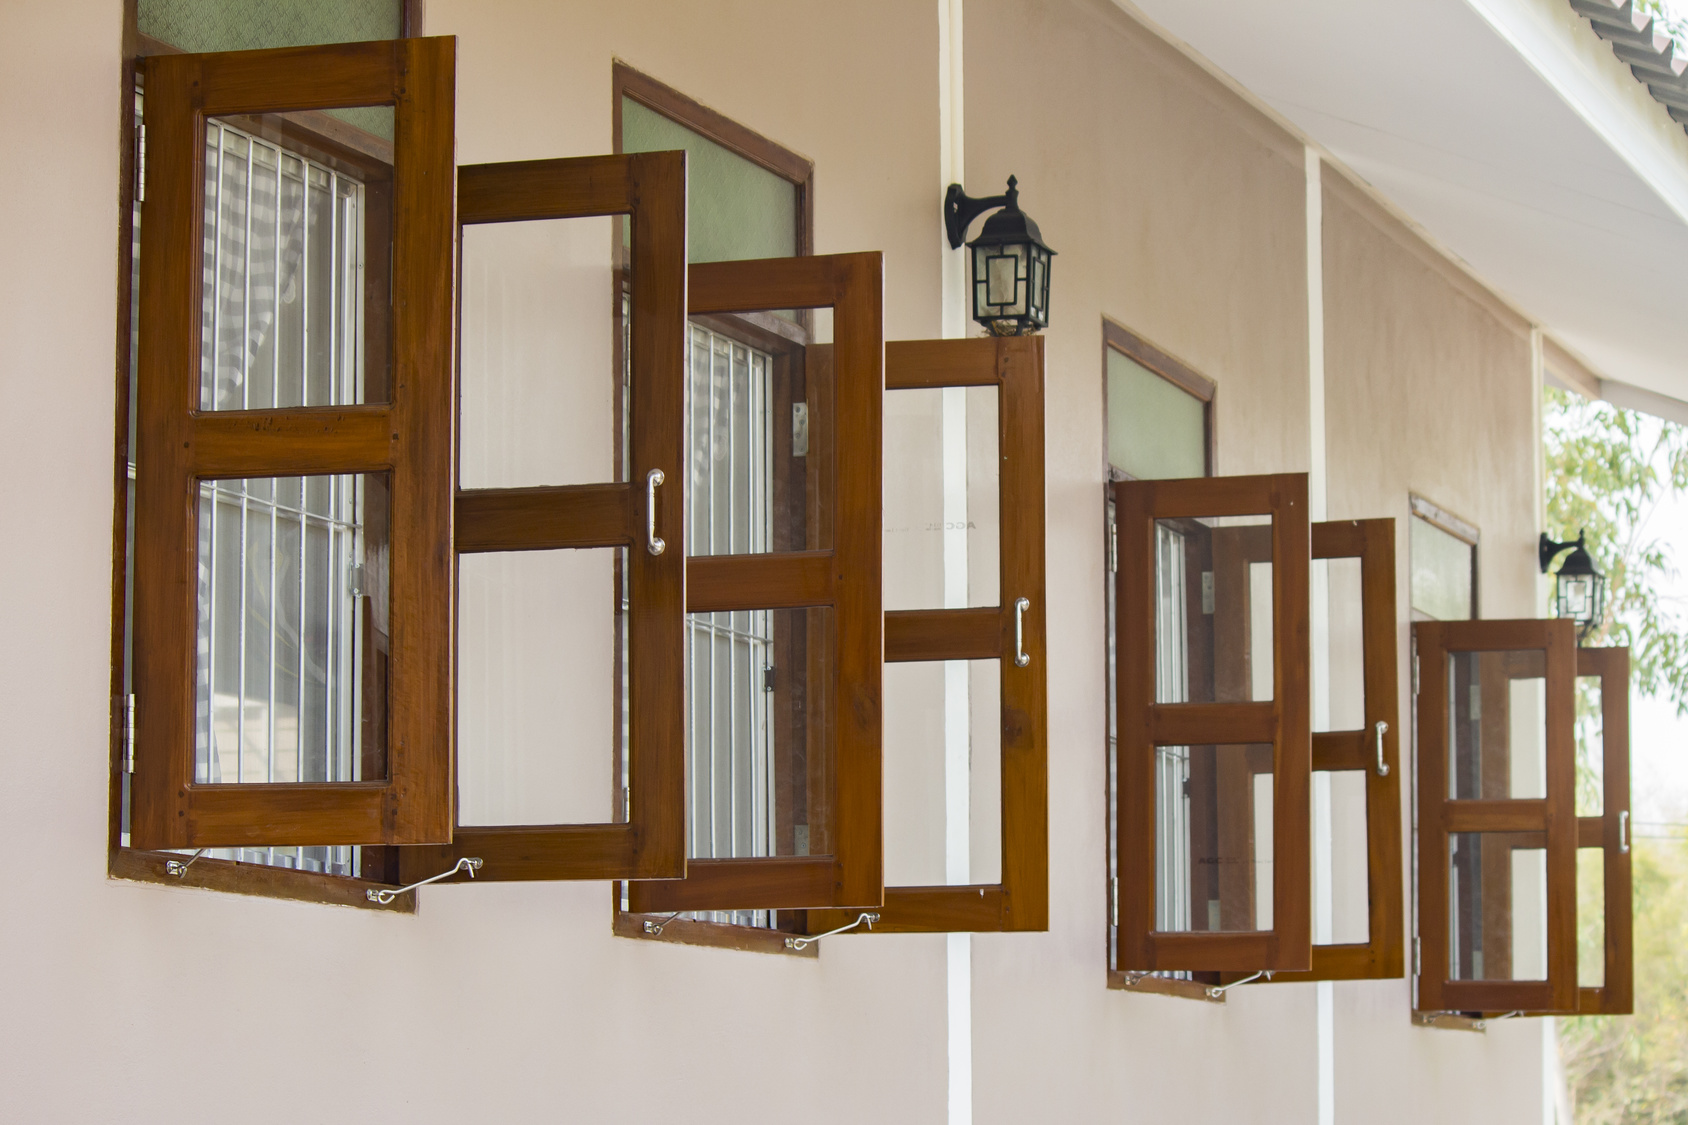 5 Things To Make Wood Windows More Appealing To Your Home